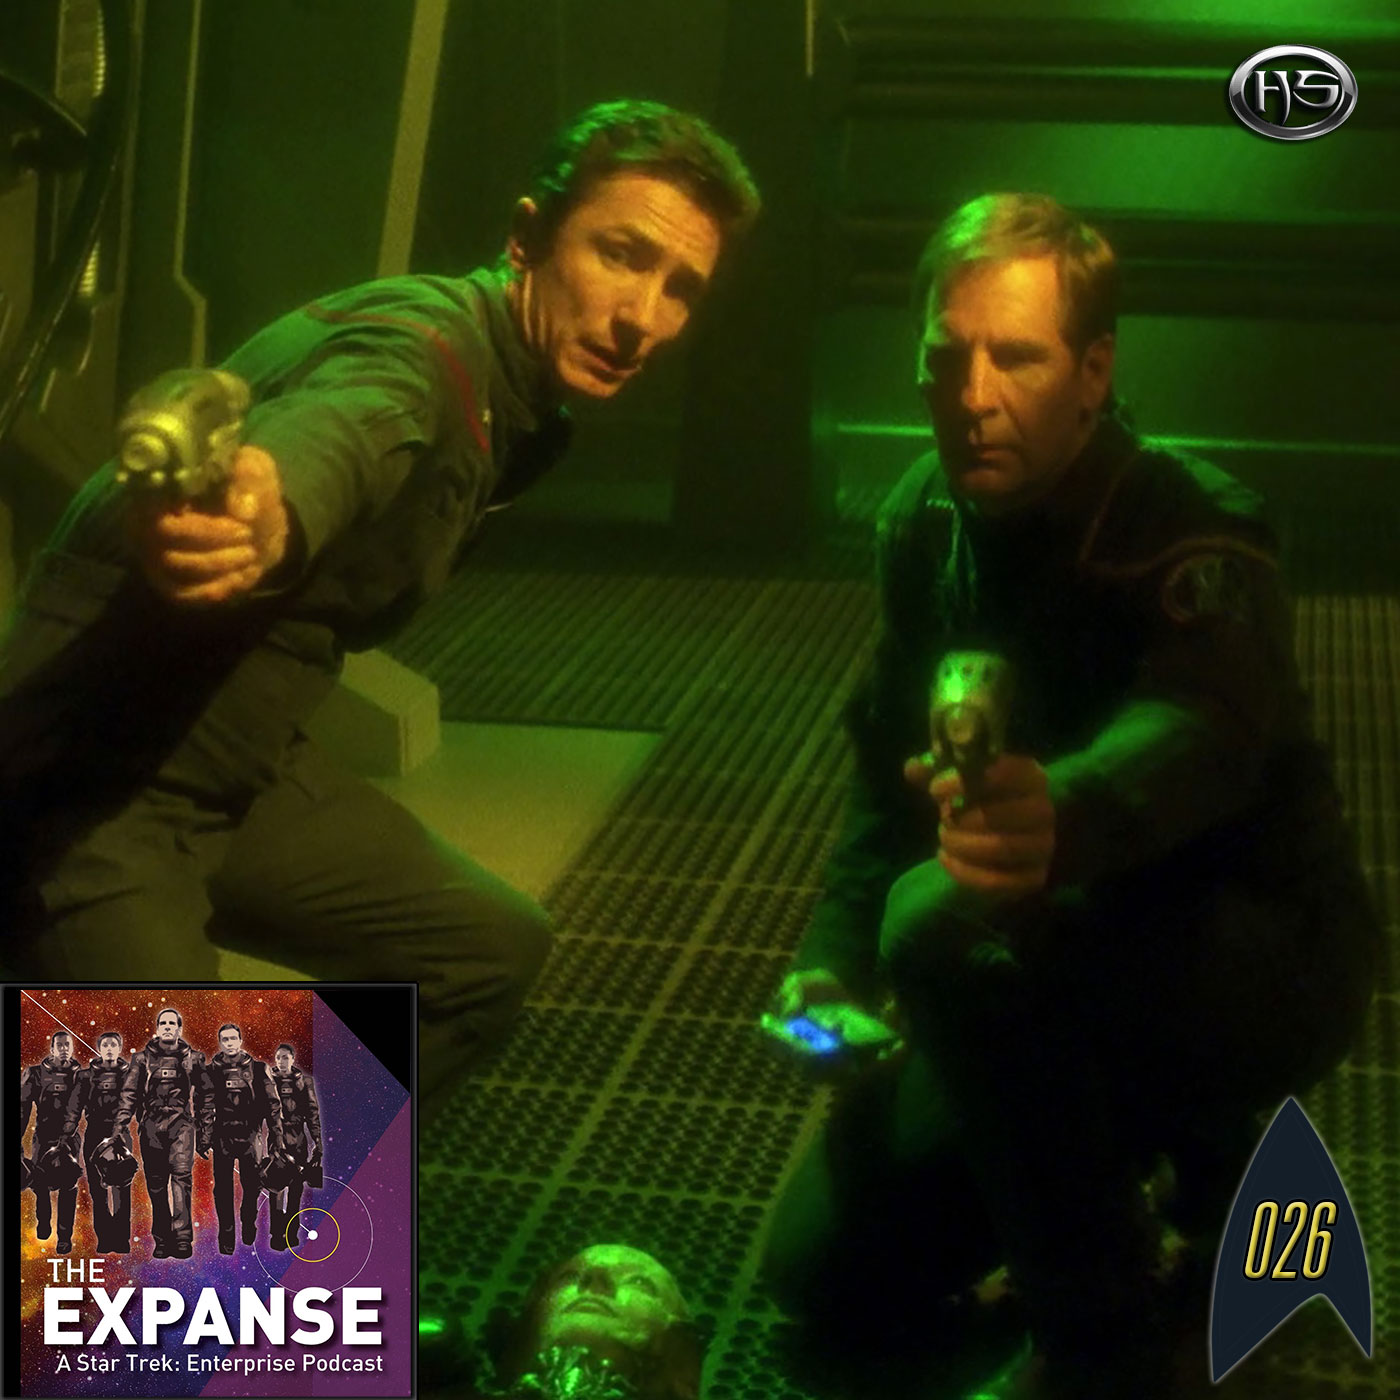 The Expanse Episode 26